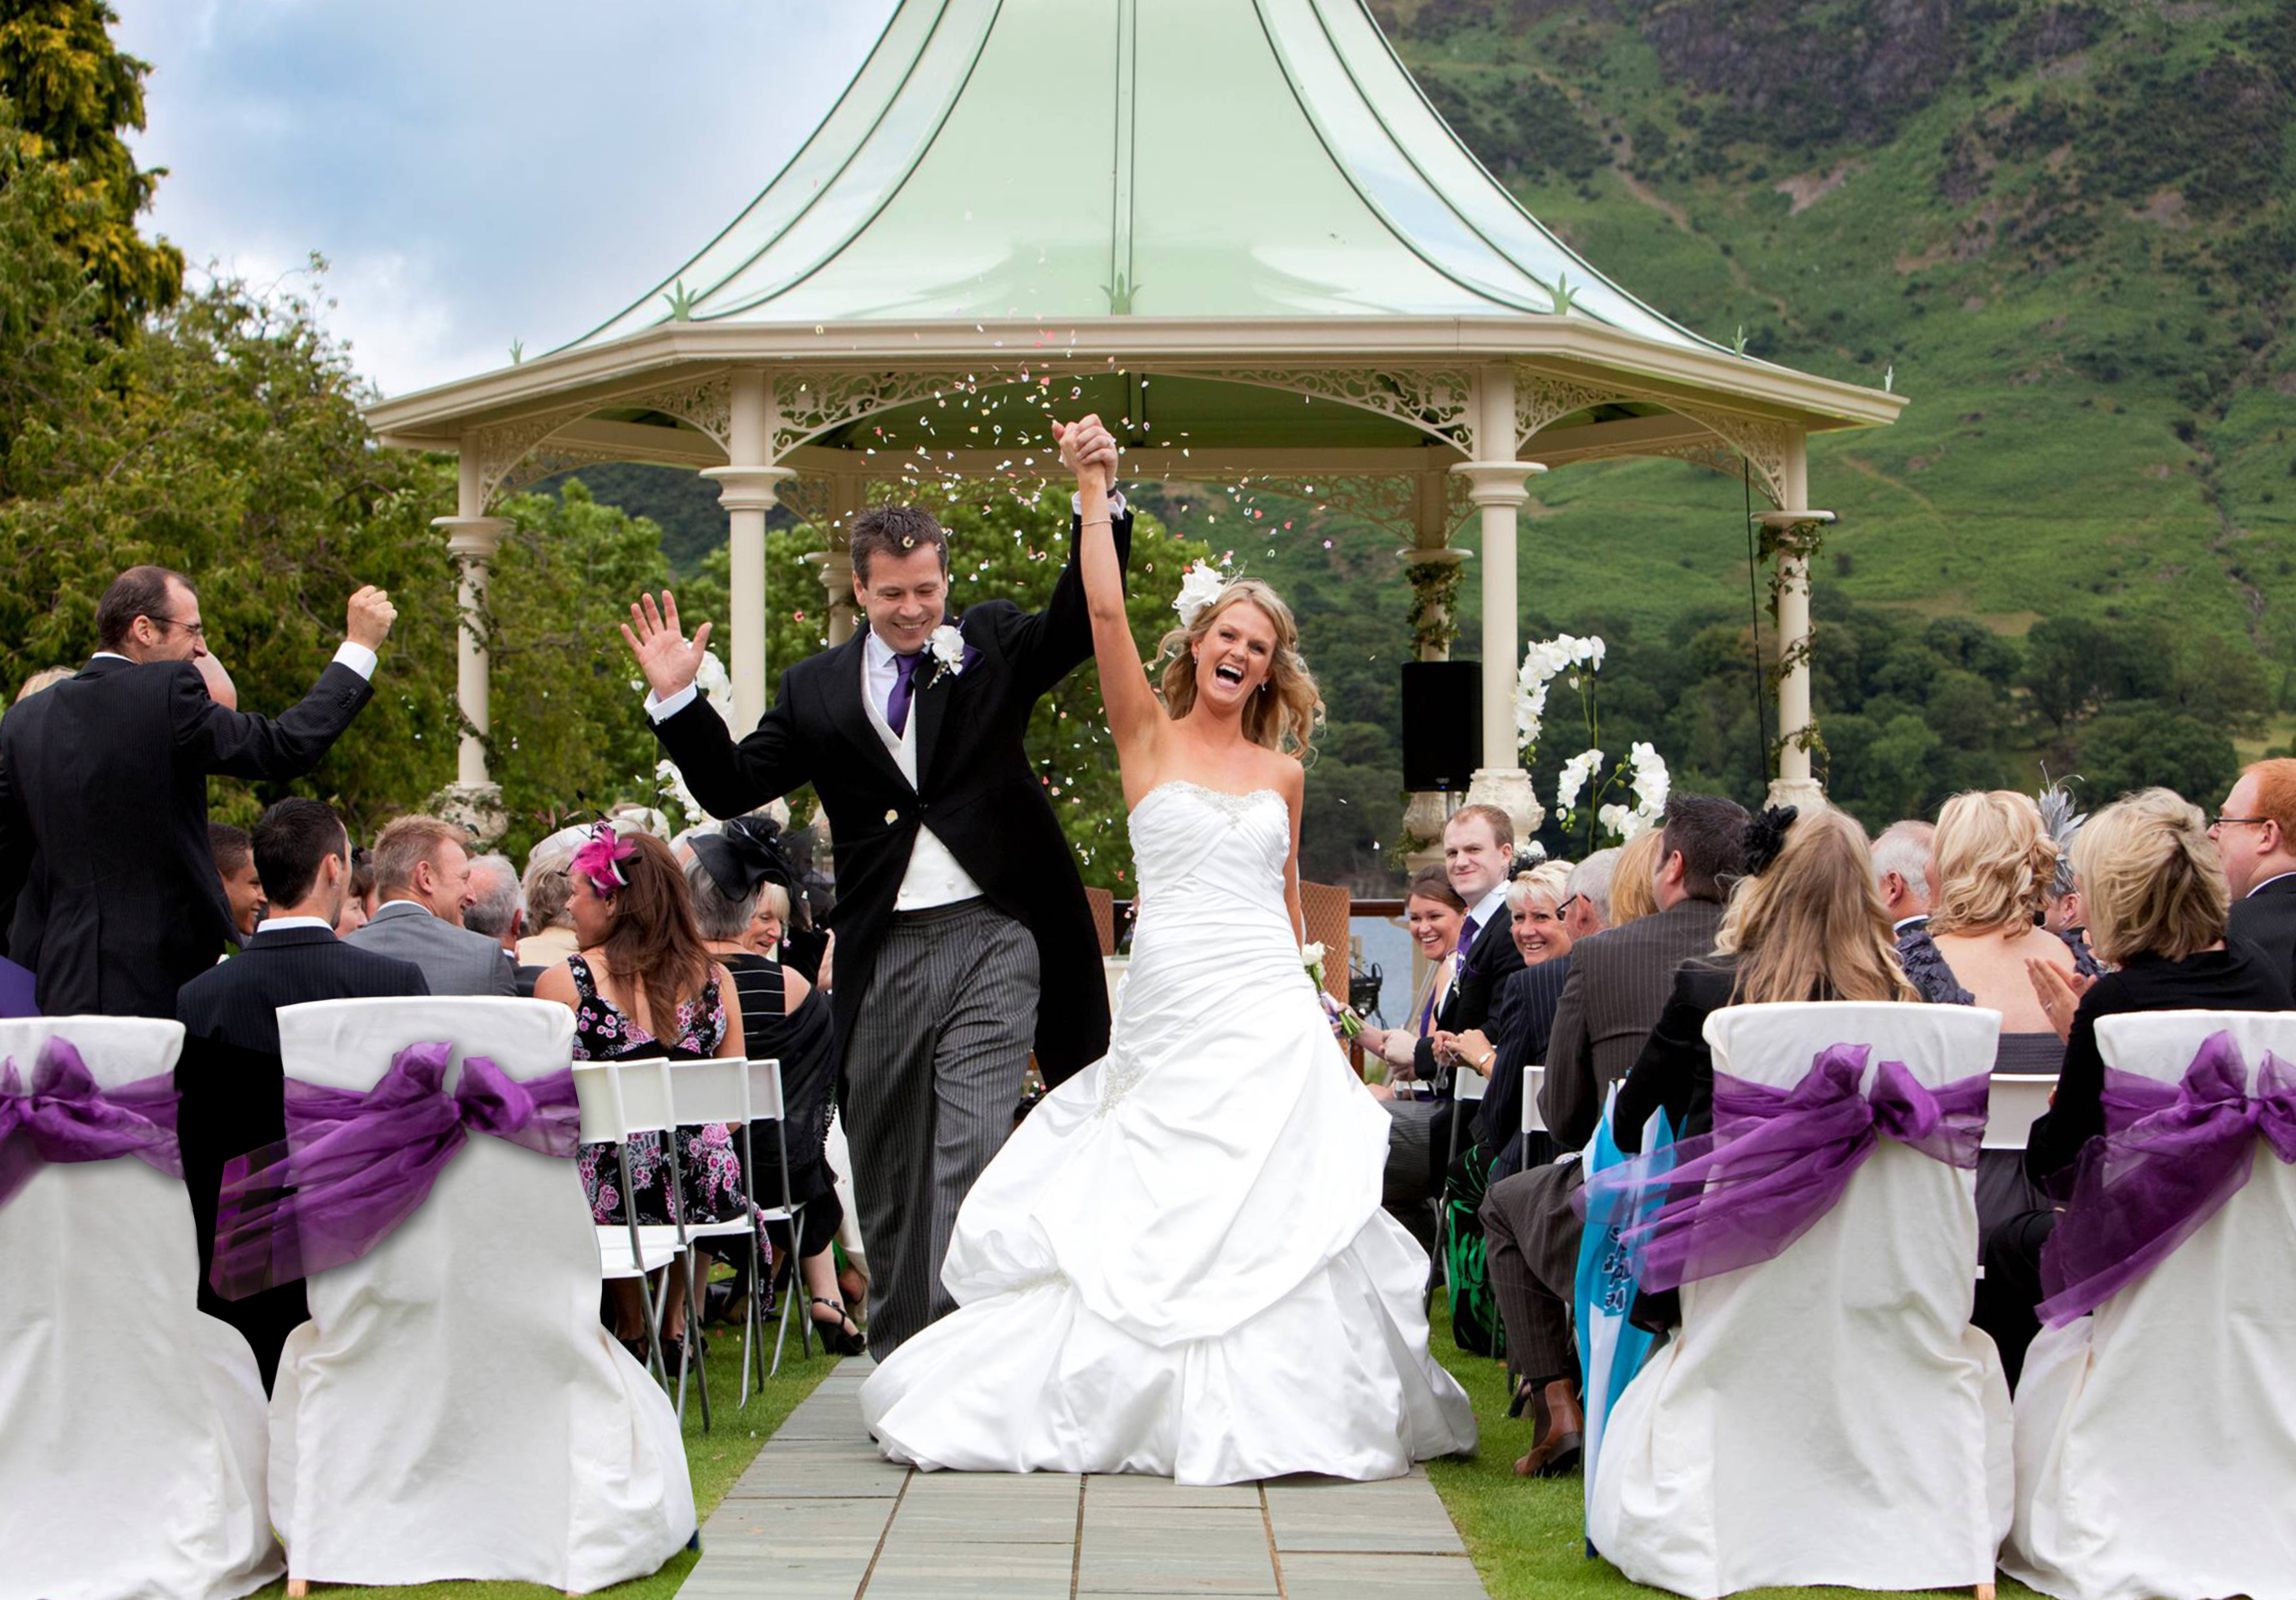 Spring Wedding Fayre at the Inn on the Lake